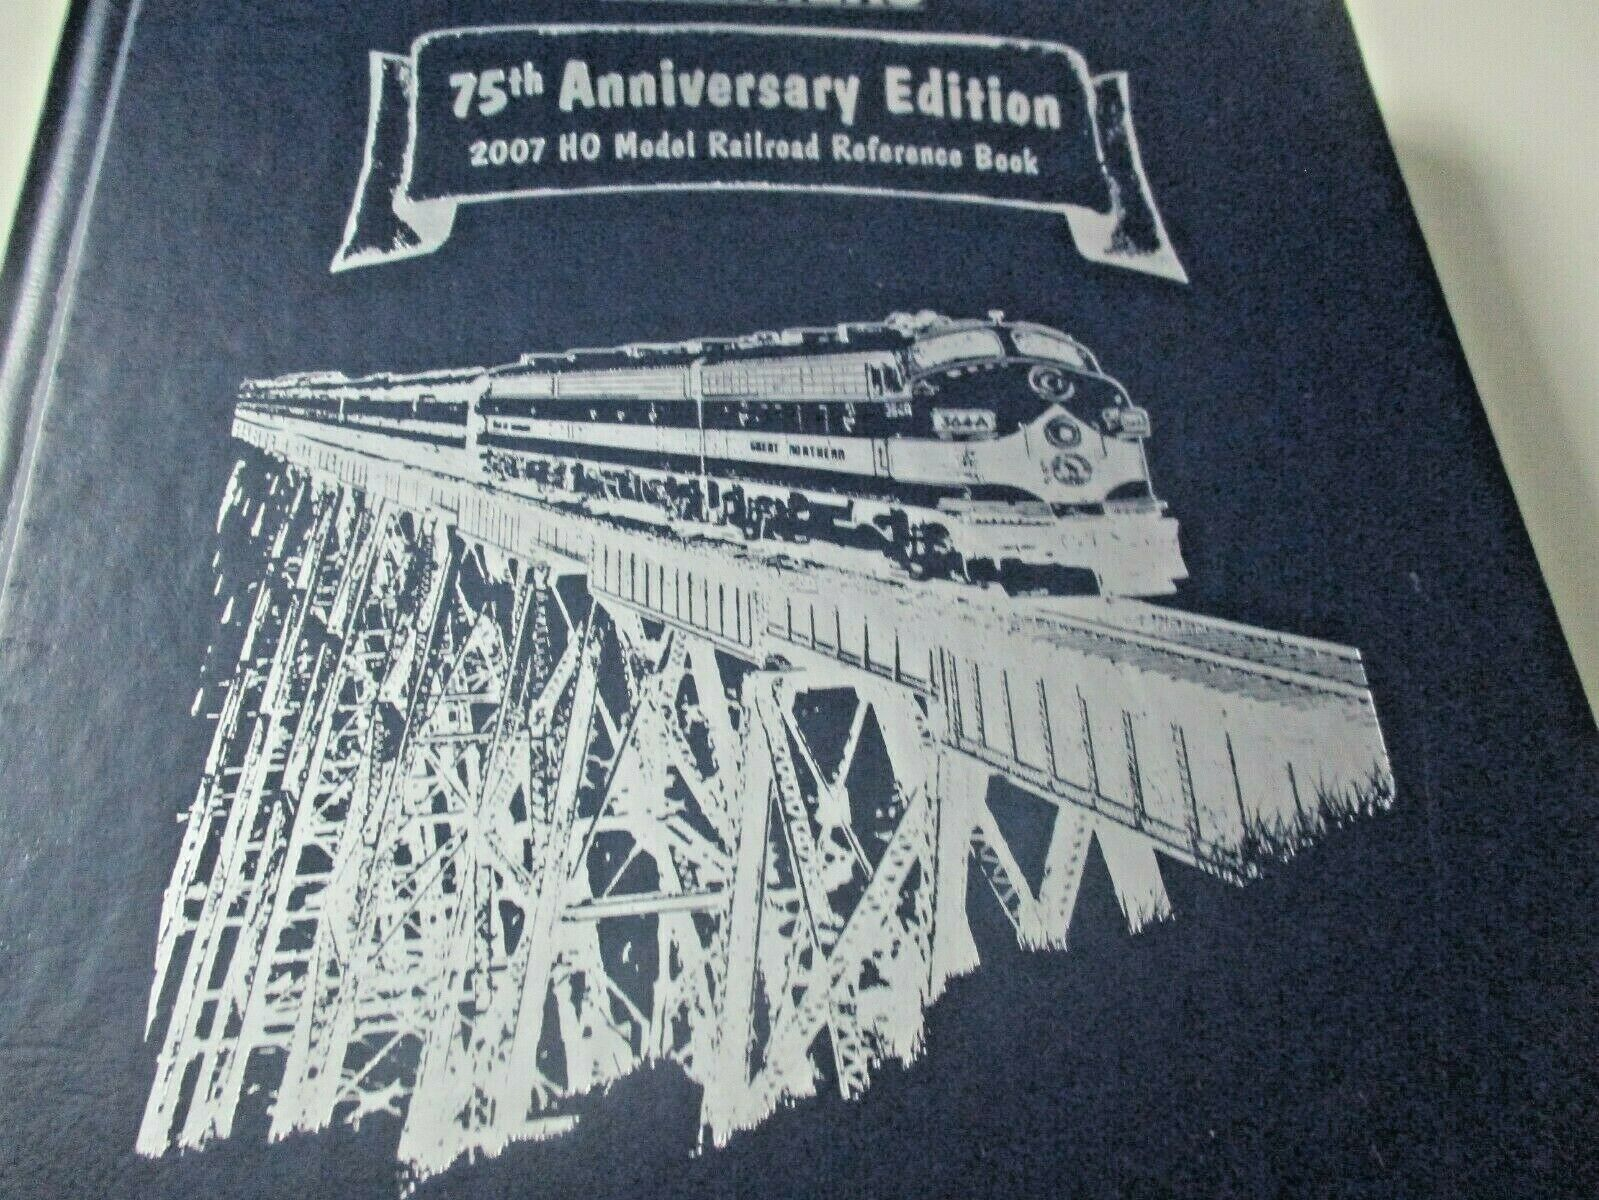 Walthers # 913-2070 2007 75th Anniversary Hard Cover # 614 of 952 Catalog (HO)